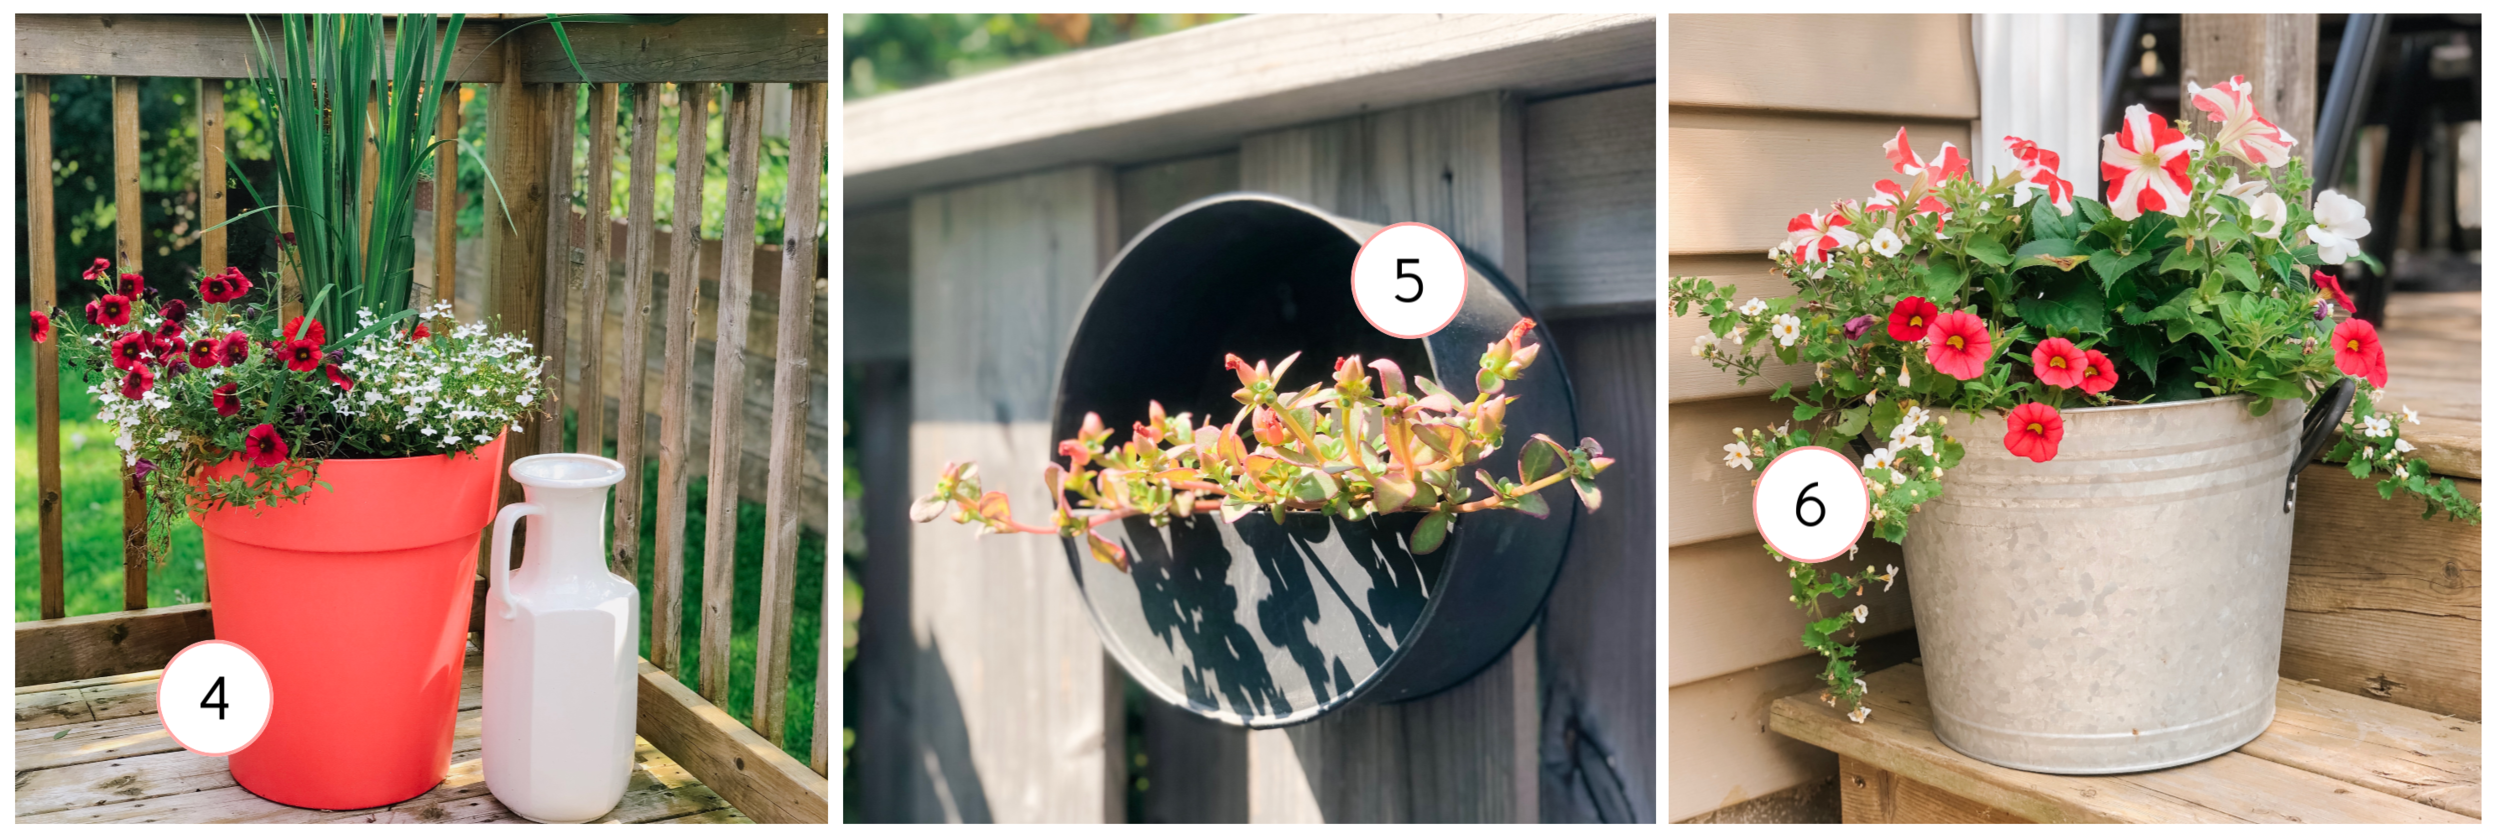 4.   Red Harmony Tall Planter    / 5.    Round Metal Wall Planter    / 6. Flowers from Kent Garden Centre